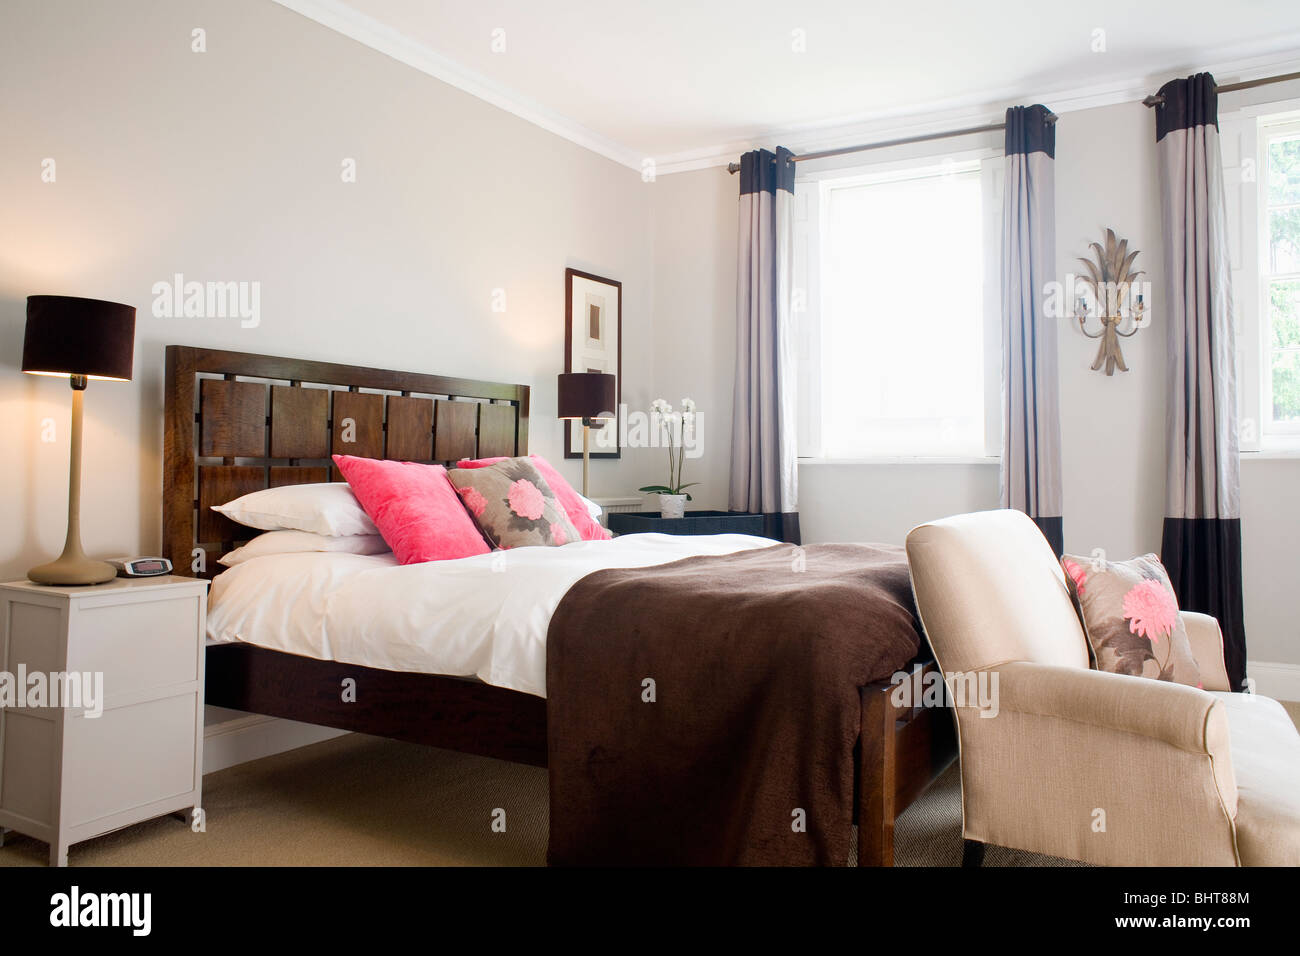 Deep Pink Cushions And Brown Throw On Bed With Wooden Bed Head And